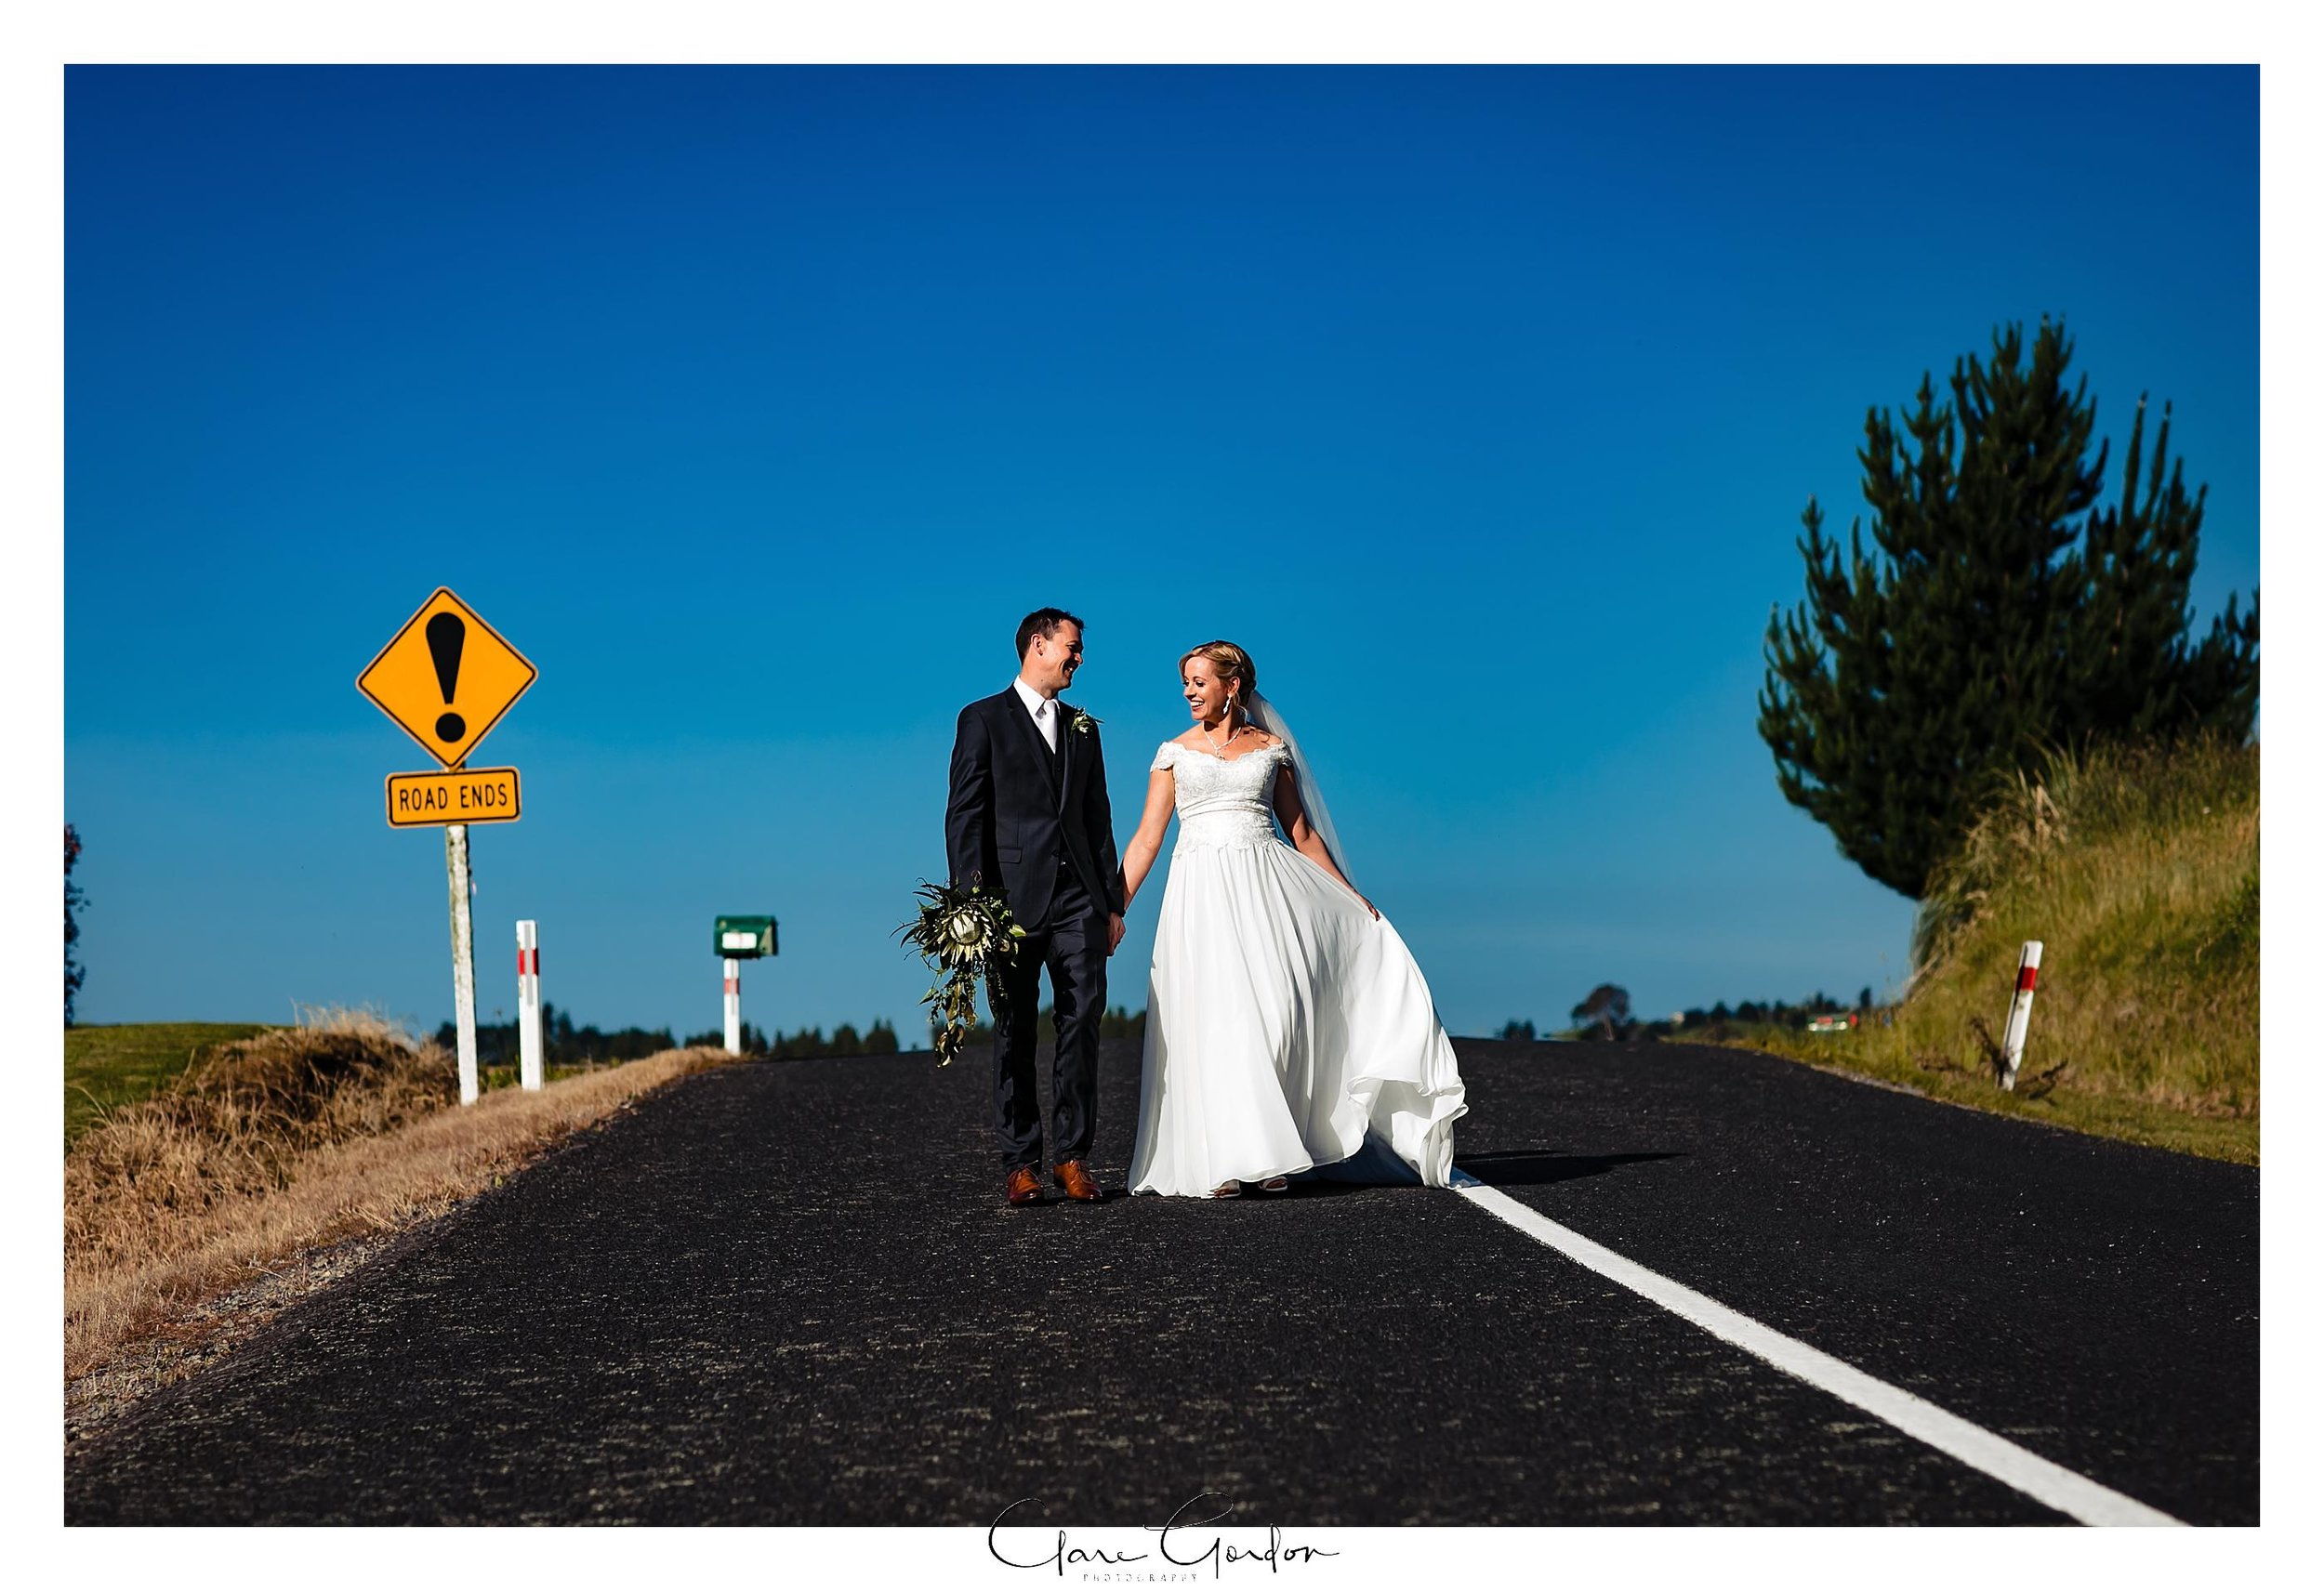 Eagle-Ridge-wedding-photo-bride-and-groom-portraits-Tauranga (124).jpg